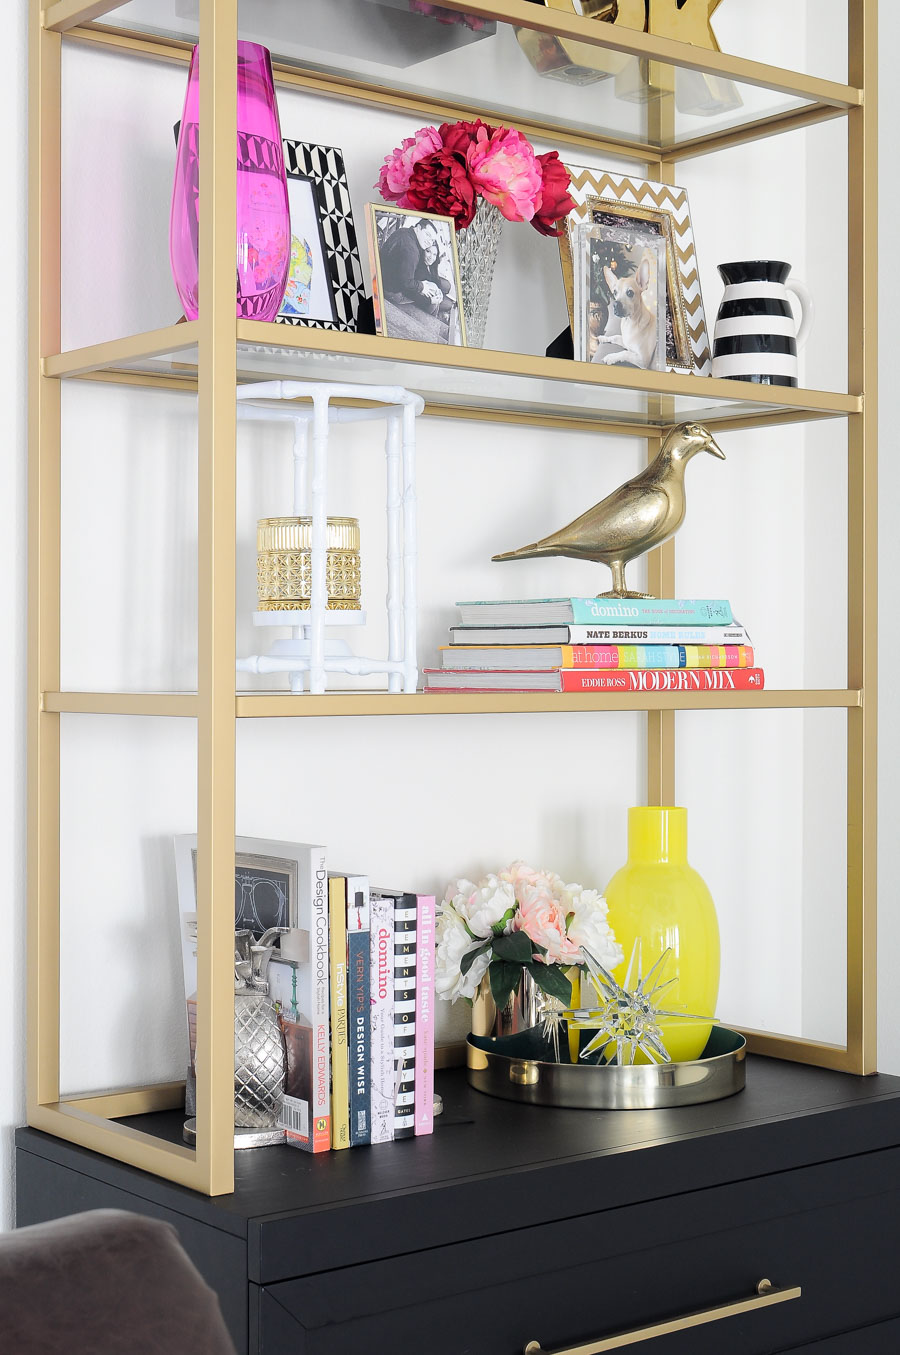 Spring decor ideas for a bookshelf, bookcase or etagere. This bookcase looks so glam, bold and colorful.